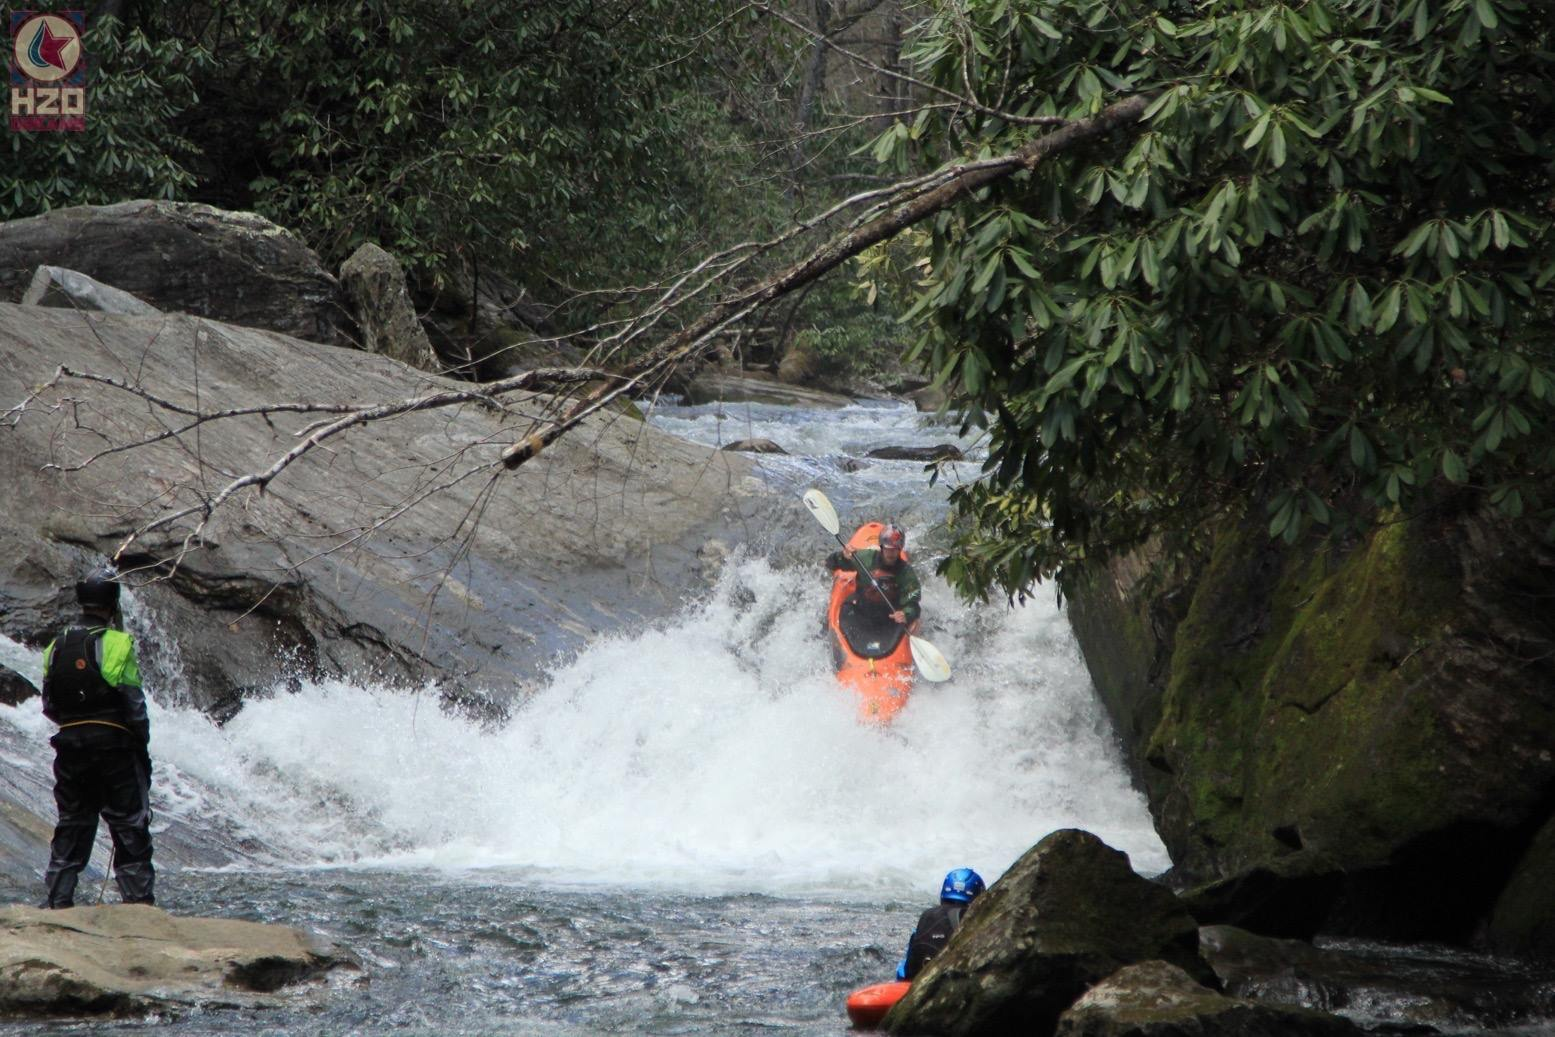 A strong team can help mitigate the risk while tackling a new run. Whether it's scouting from shore or offering safety mid river. Photo: Chris Wing of  H20 Dreams